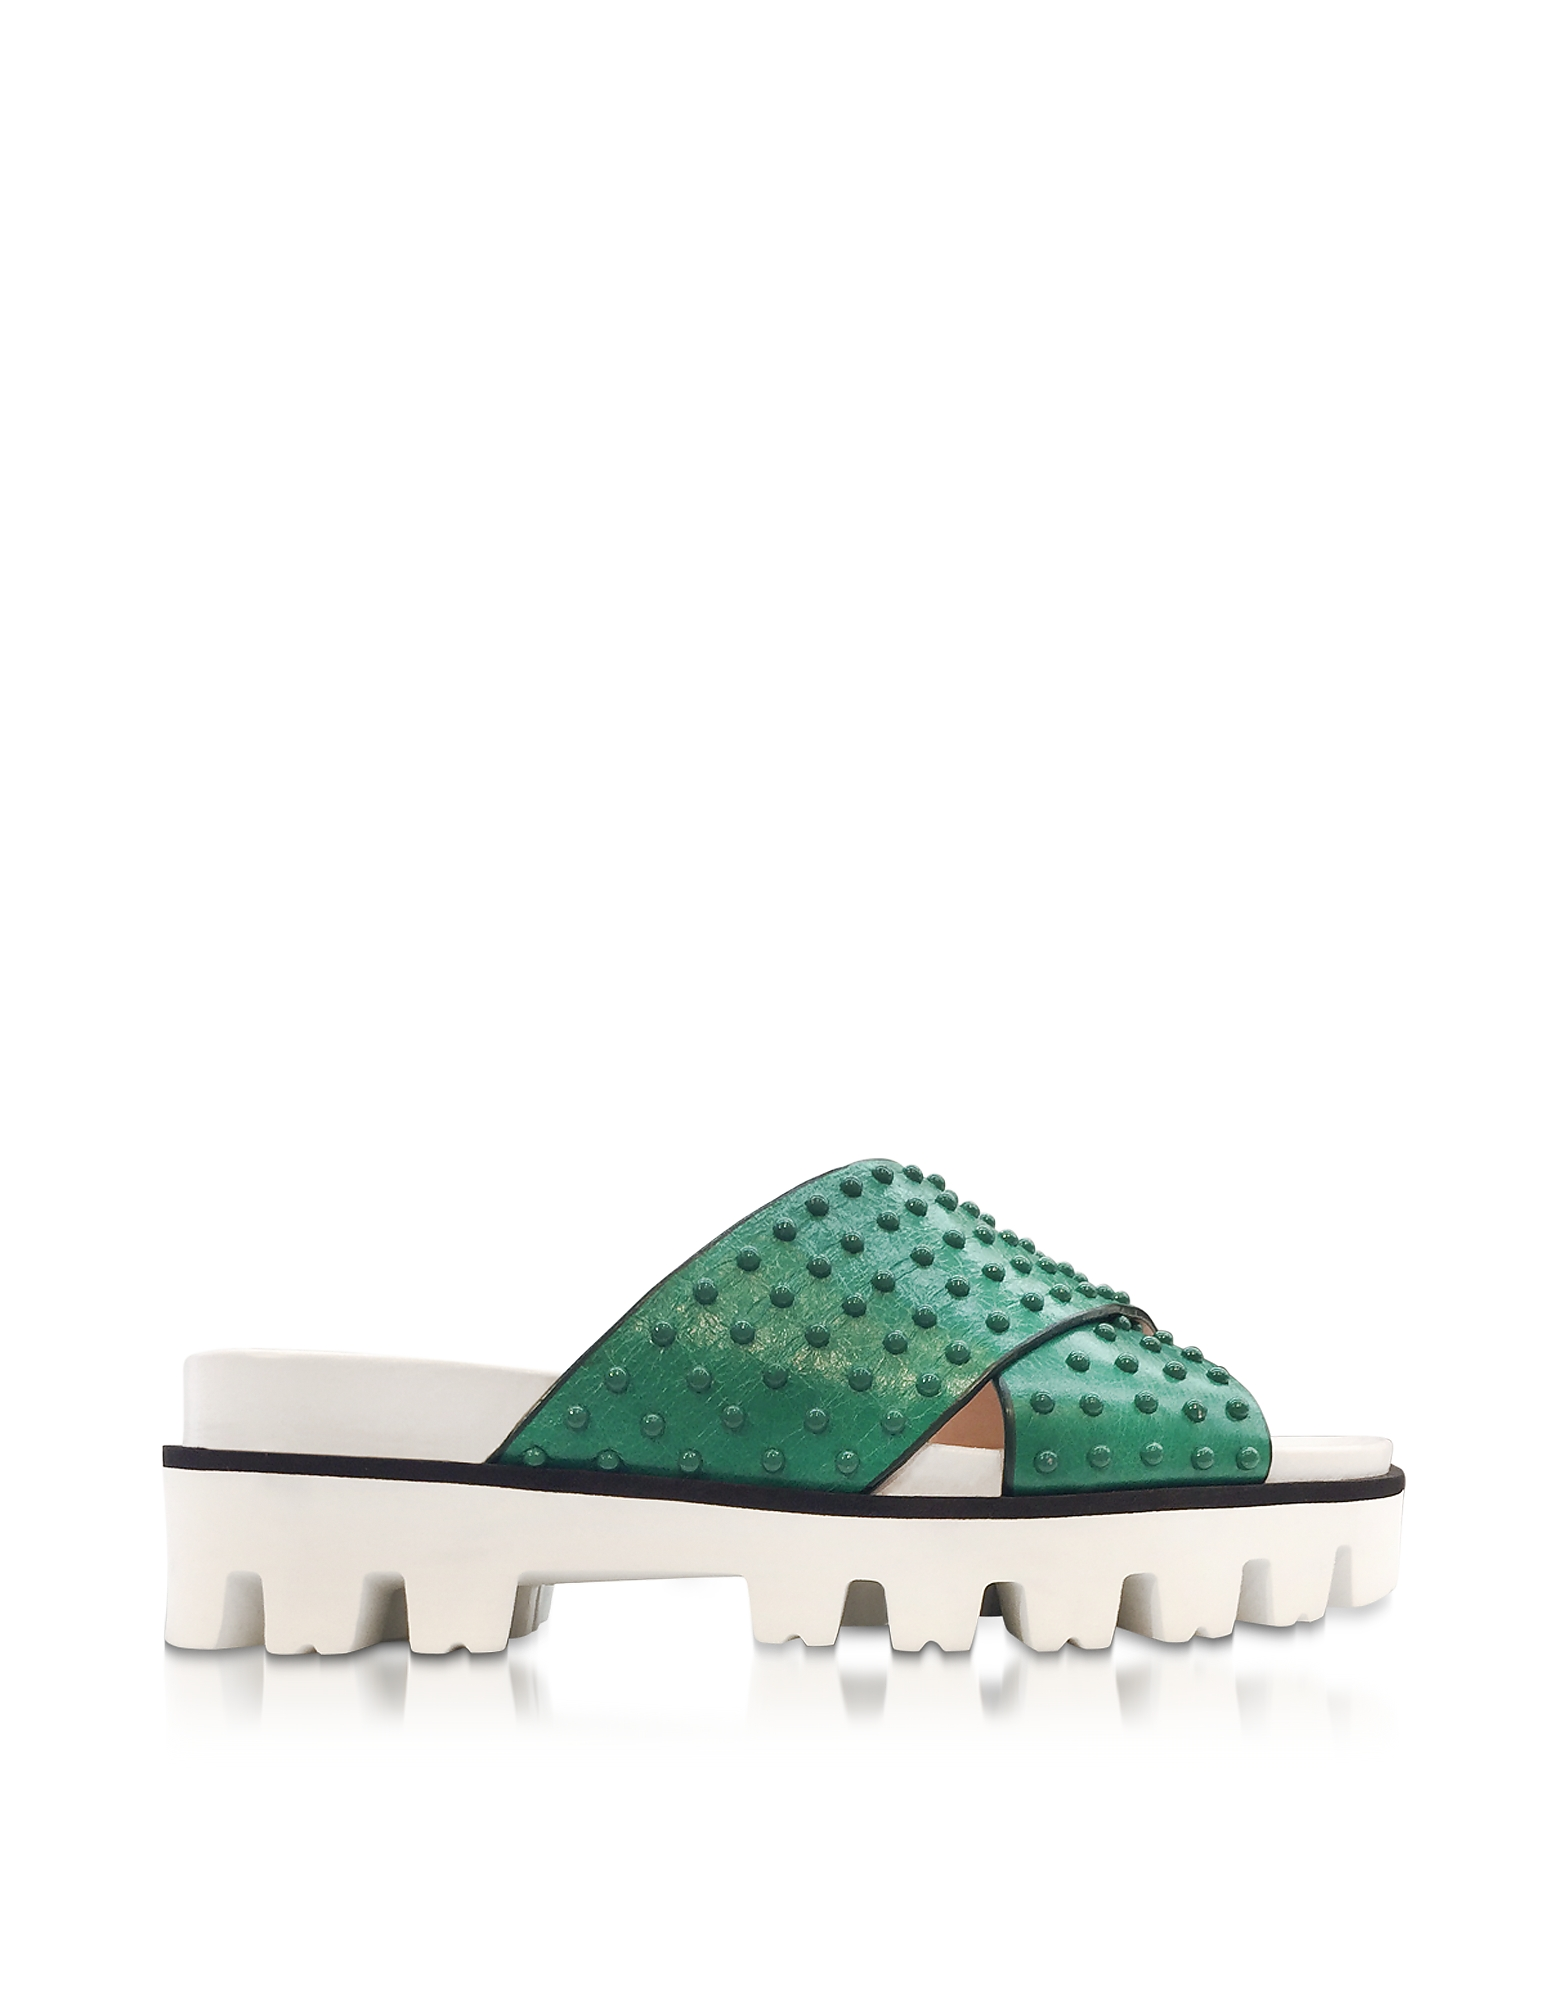 RED Valentino Shoes, Mint Green Leather Slide Sandals w/Studs